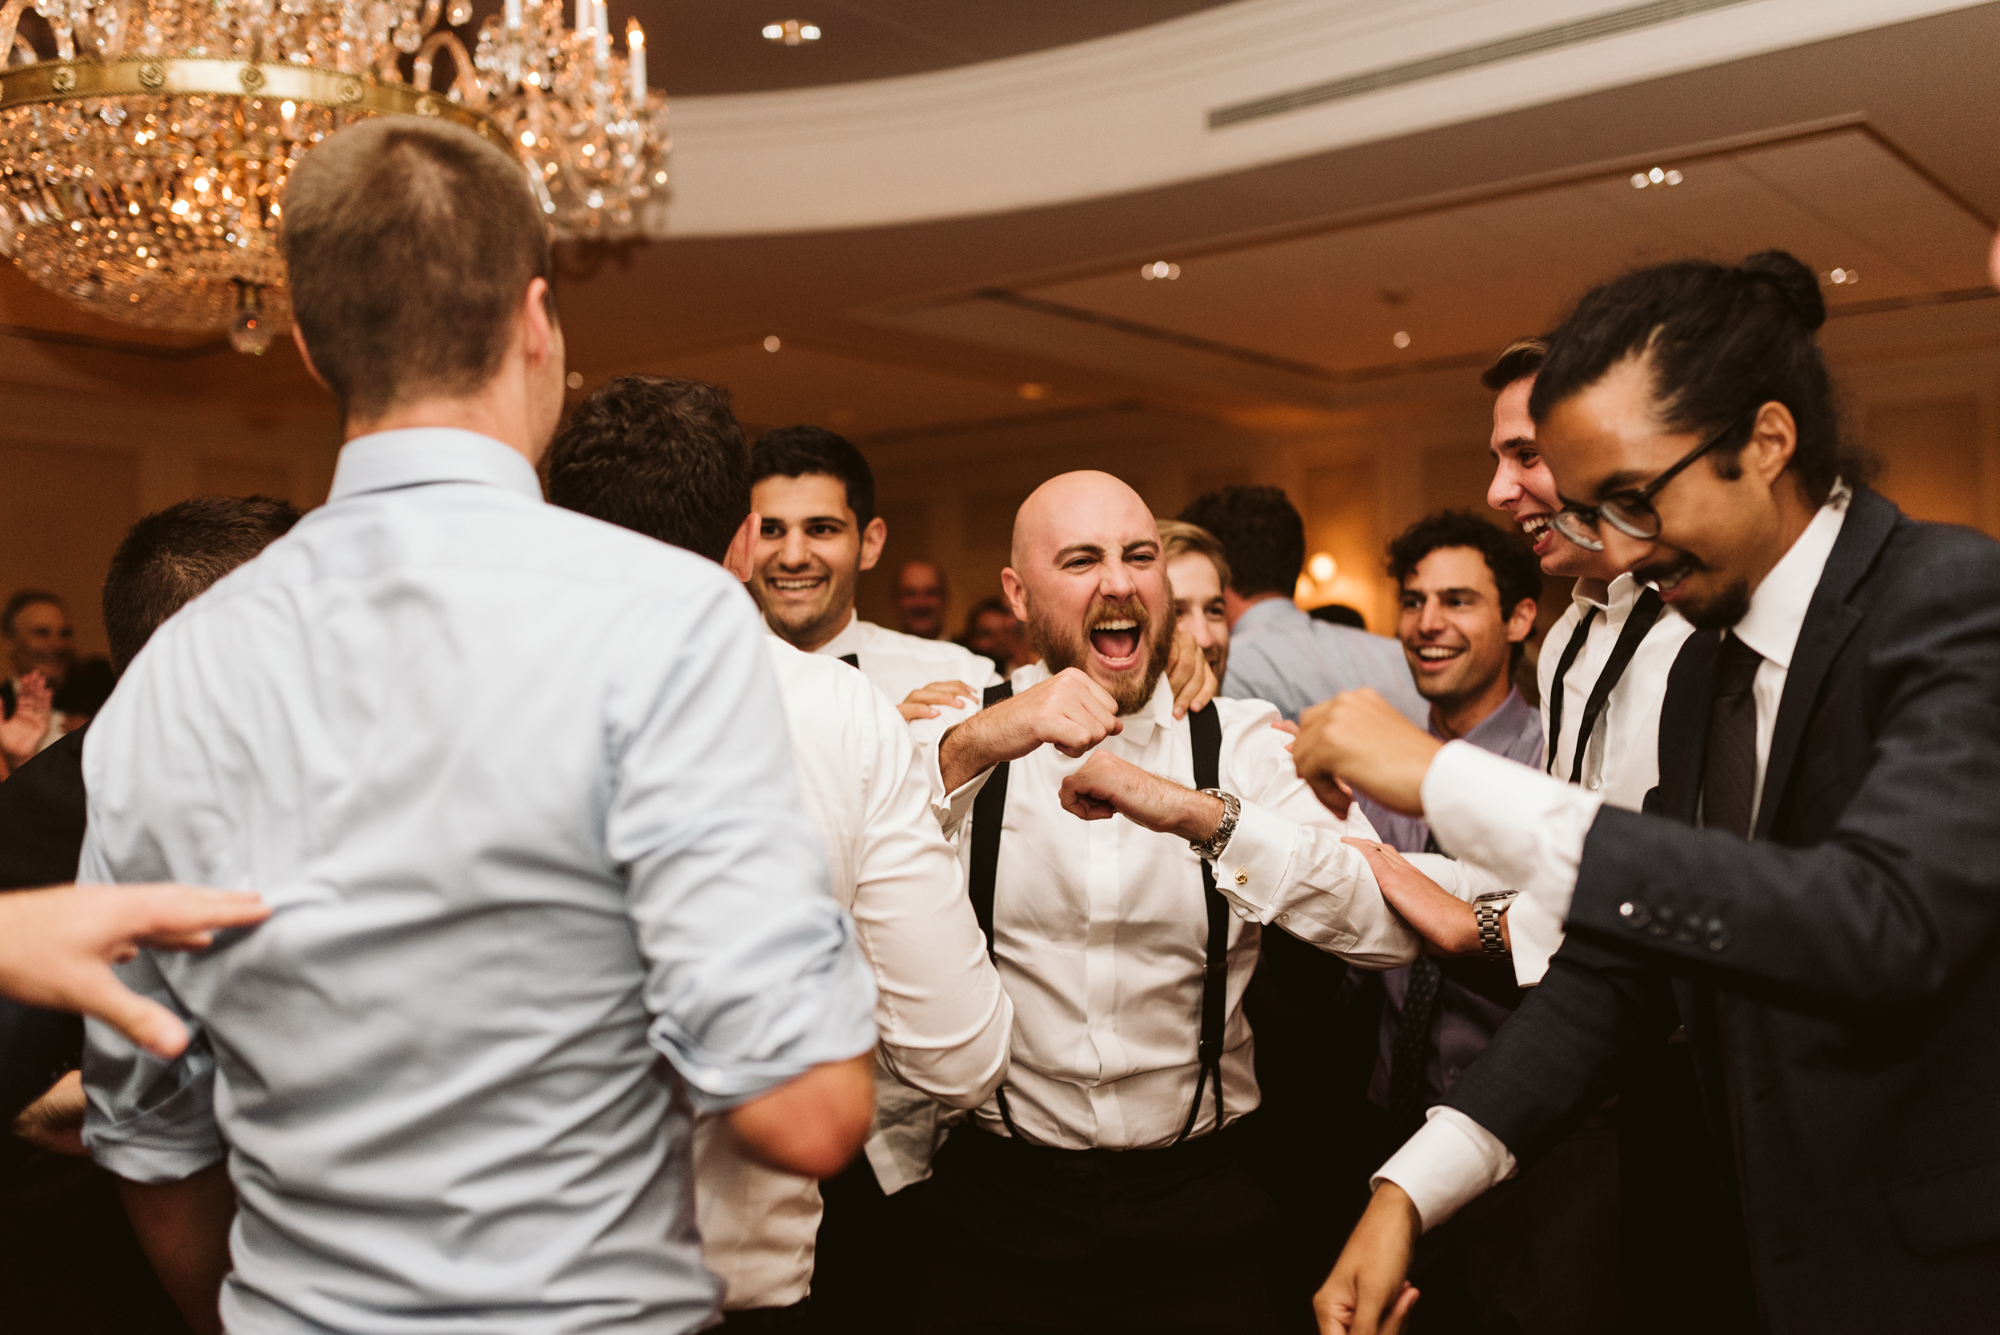 Elegant, Columbia Country Club, Chevy Chase Maryland, Baltimore Wedding Photographer, Classic, Traditional, Groom and Groomsmen Doing Awesome Dance Moves at Reception